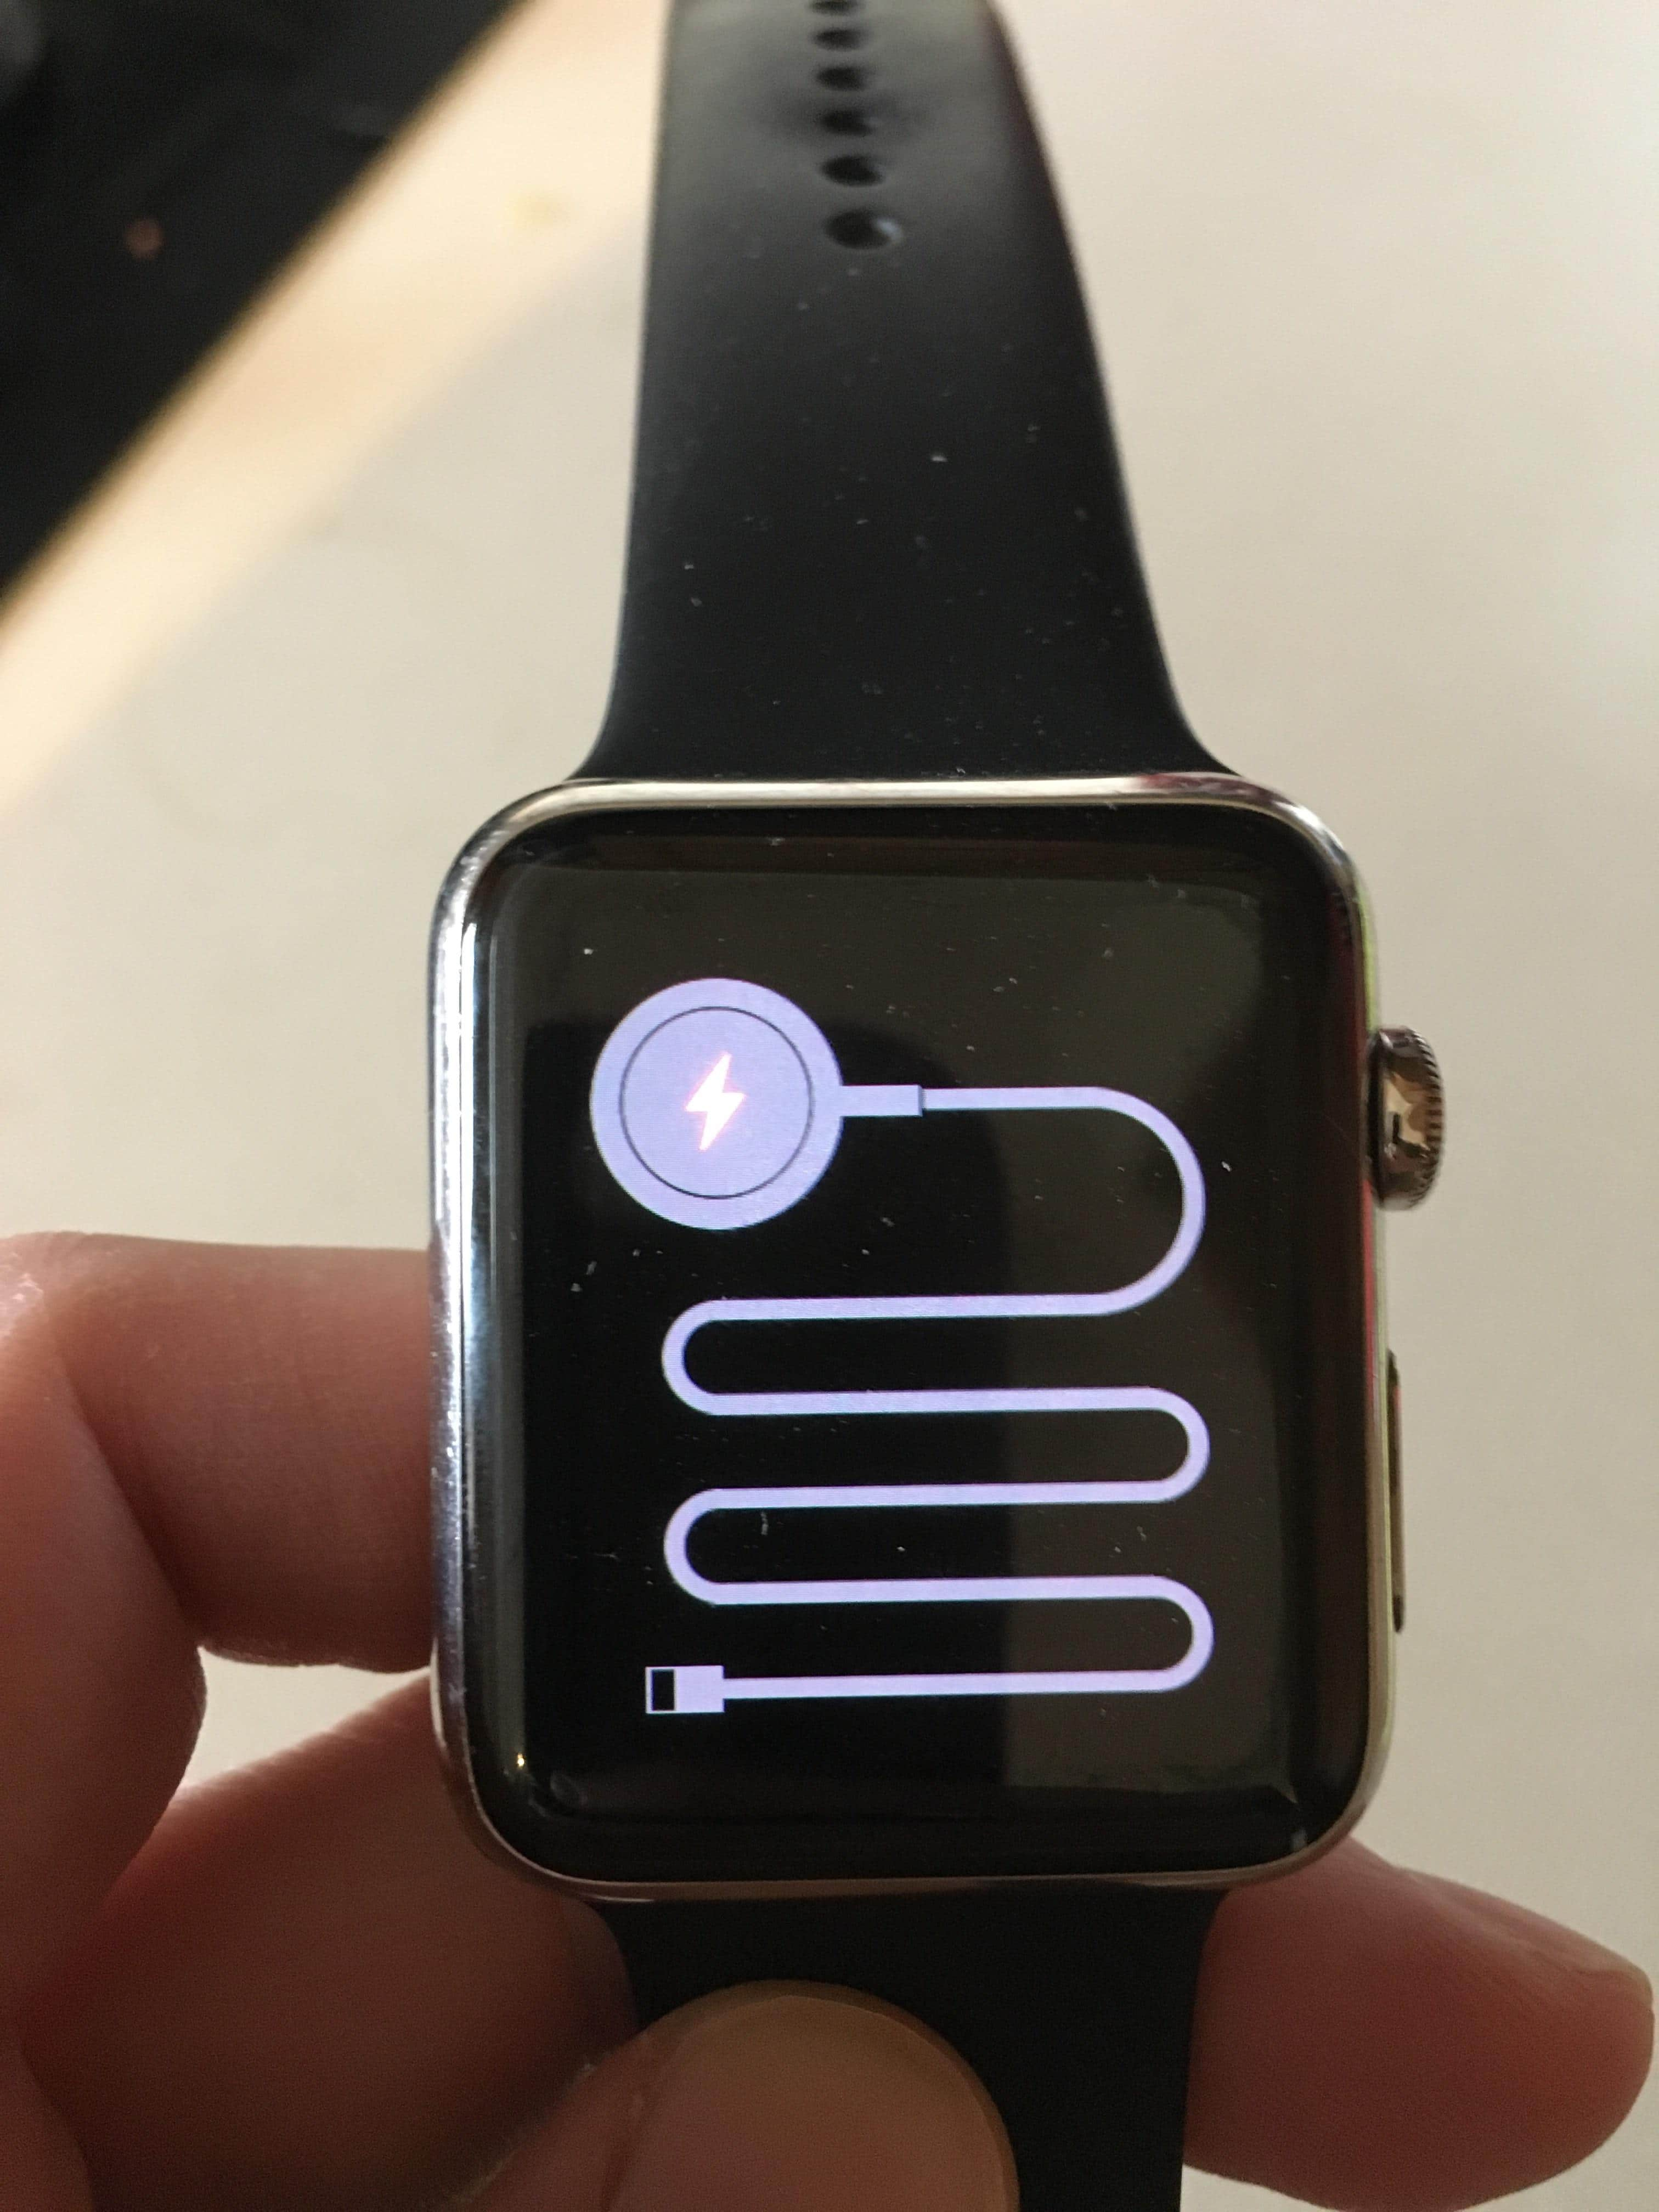 Apple Watch Won't Charge - Here's The Real Fix For This Issue!